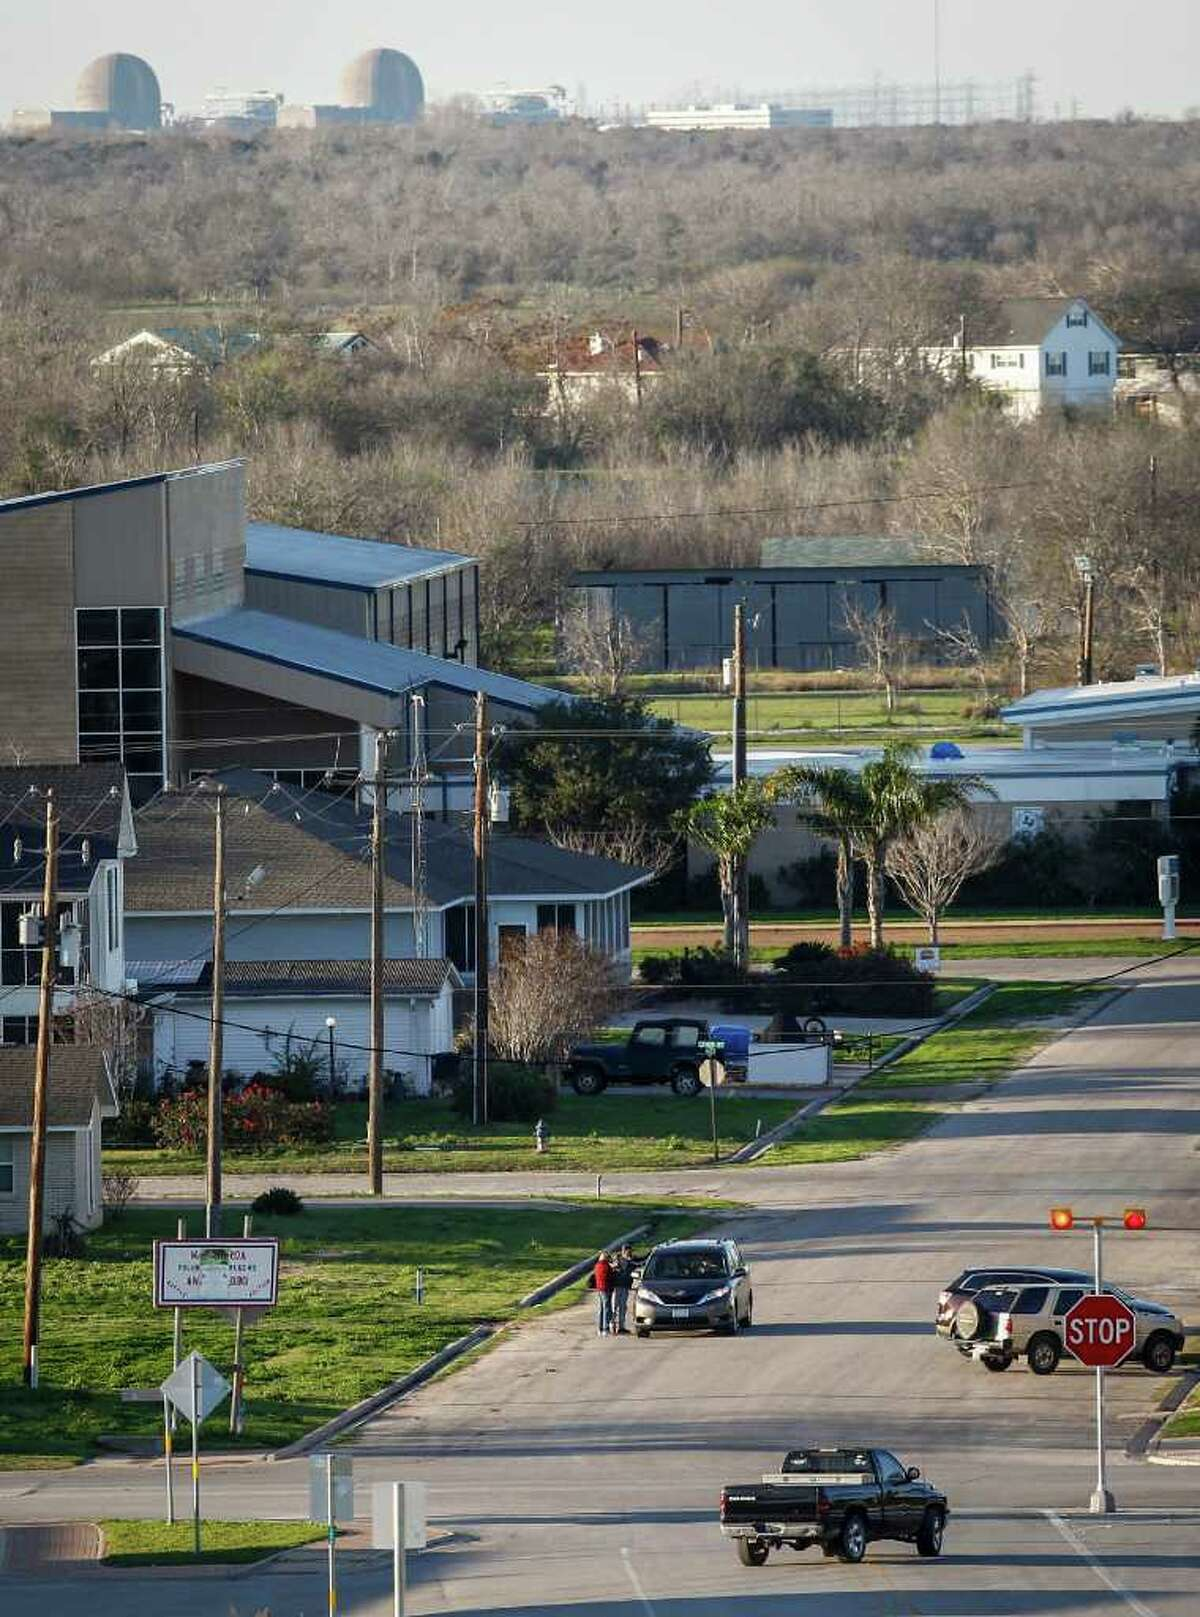 The South Texas Project Electric Generating Station looms beyond Matagorda's main intersection Thursday. The tiny coastal town had been counting on an expansion of the nuclear plant, but it has stalled.